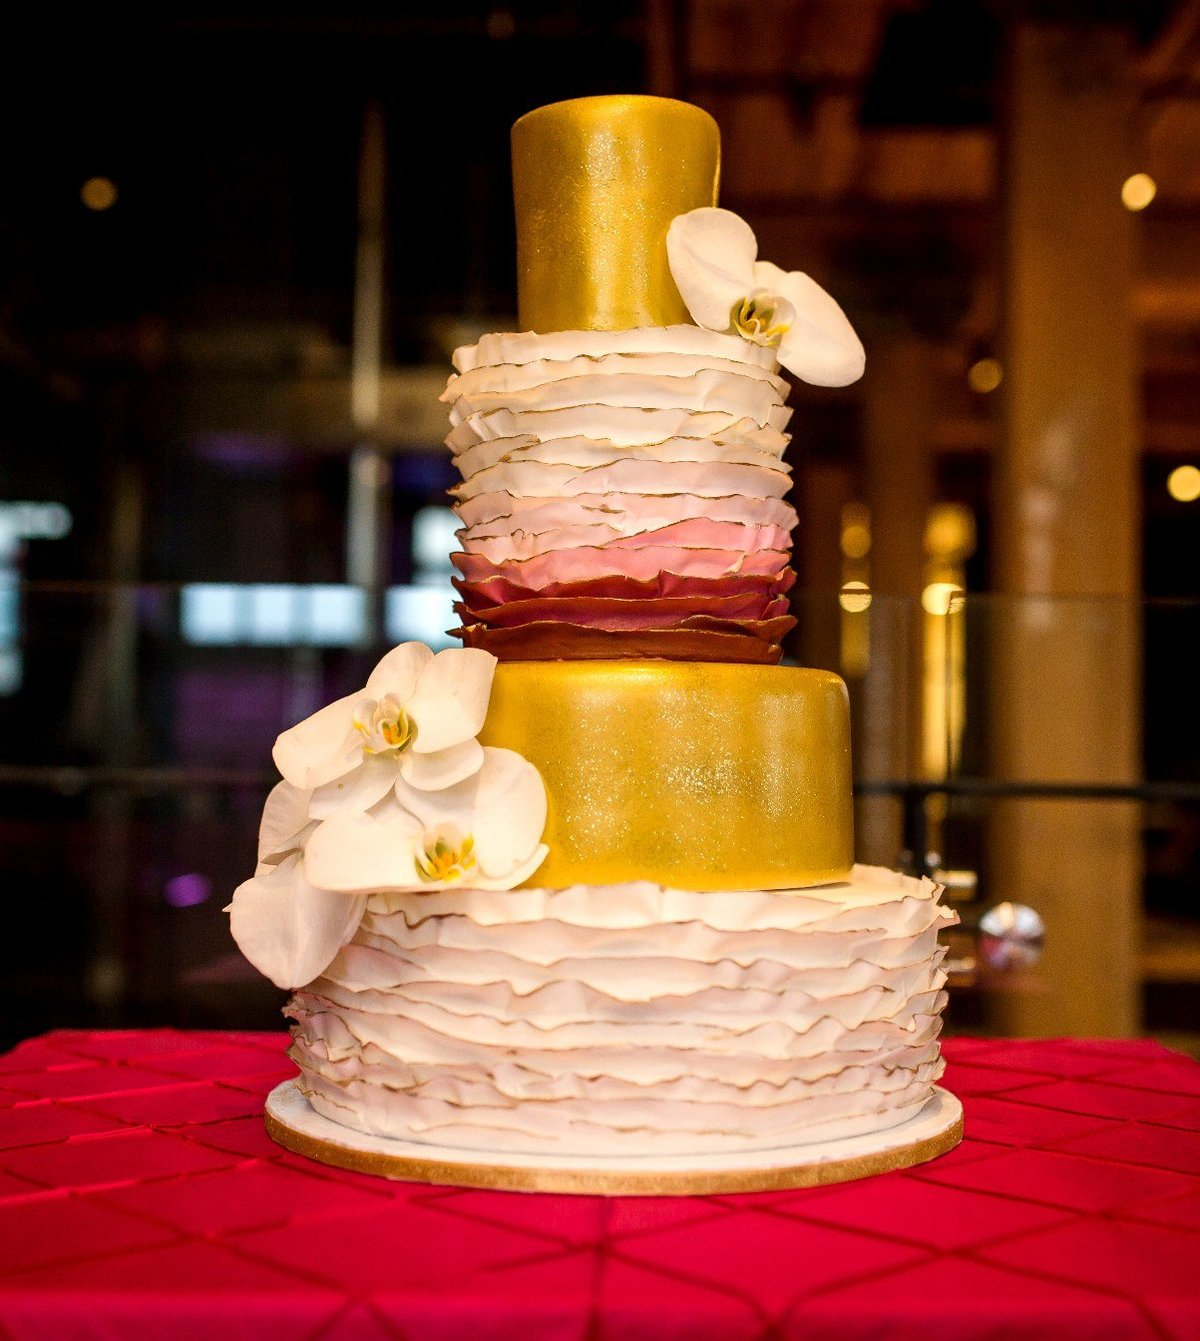 Whippt Desserts & Catering - Wedding Cake - photo by TLAW2